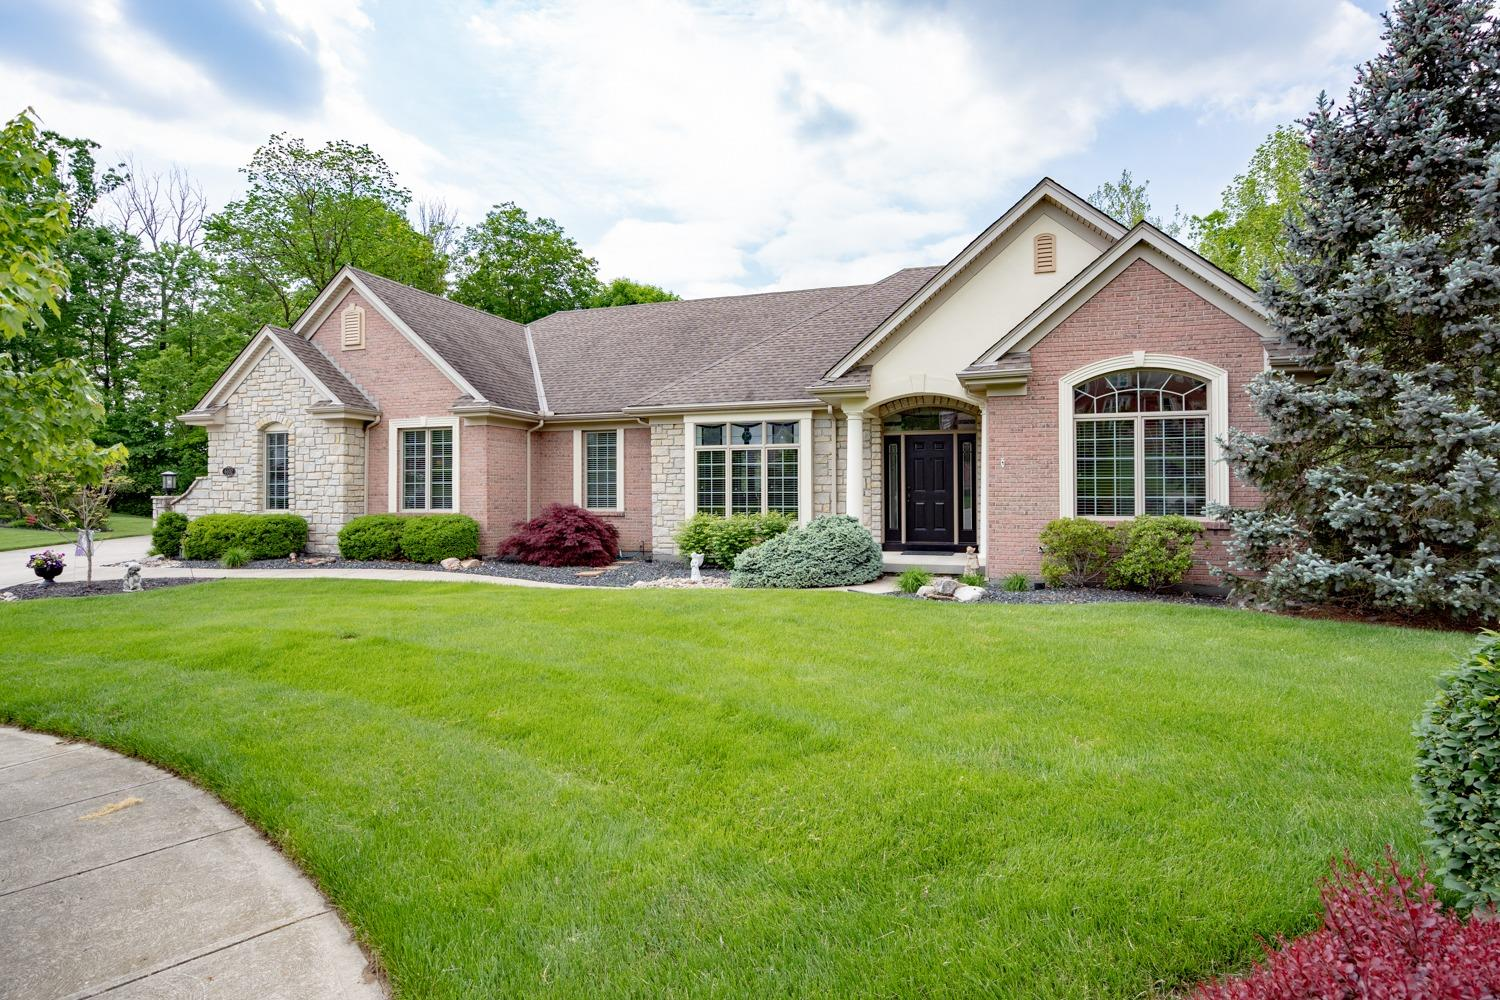 6102 Garden View Ct Monfort Hts., OH